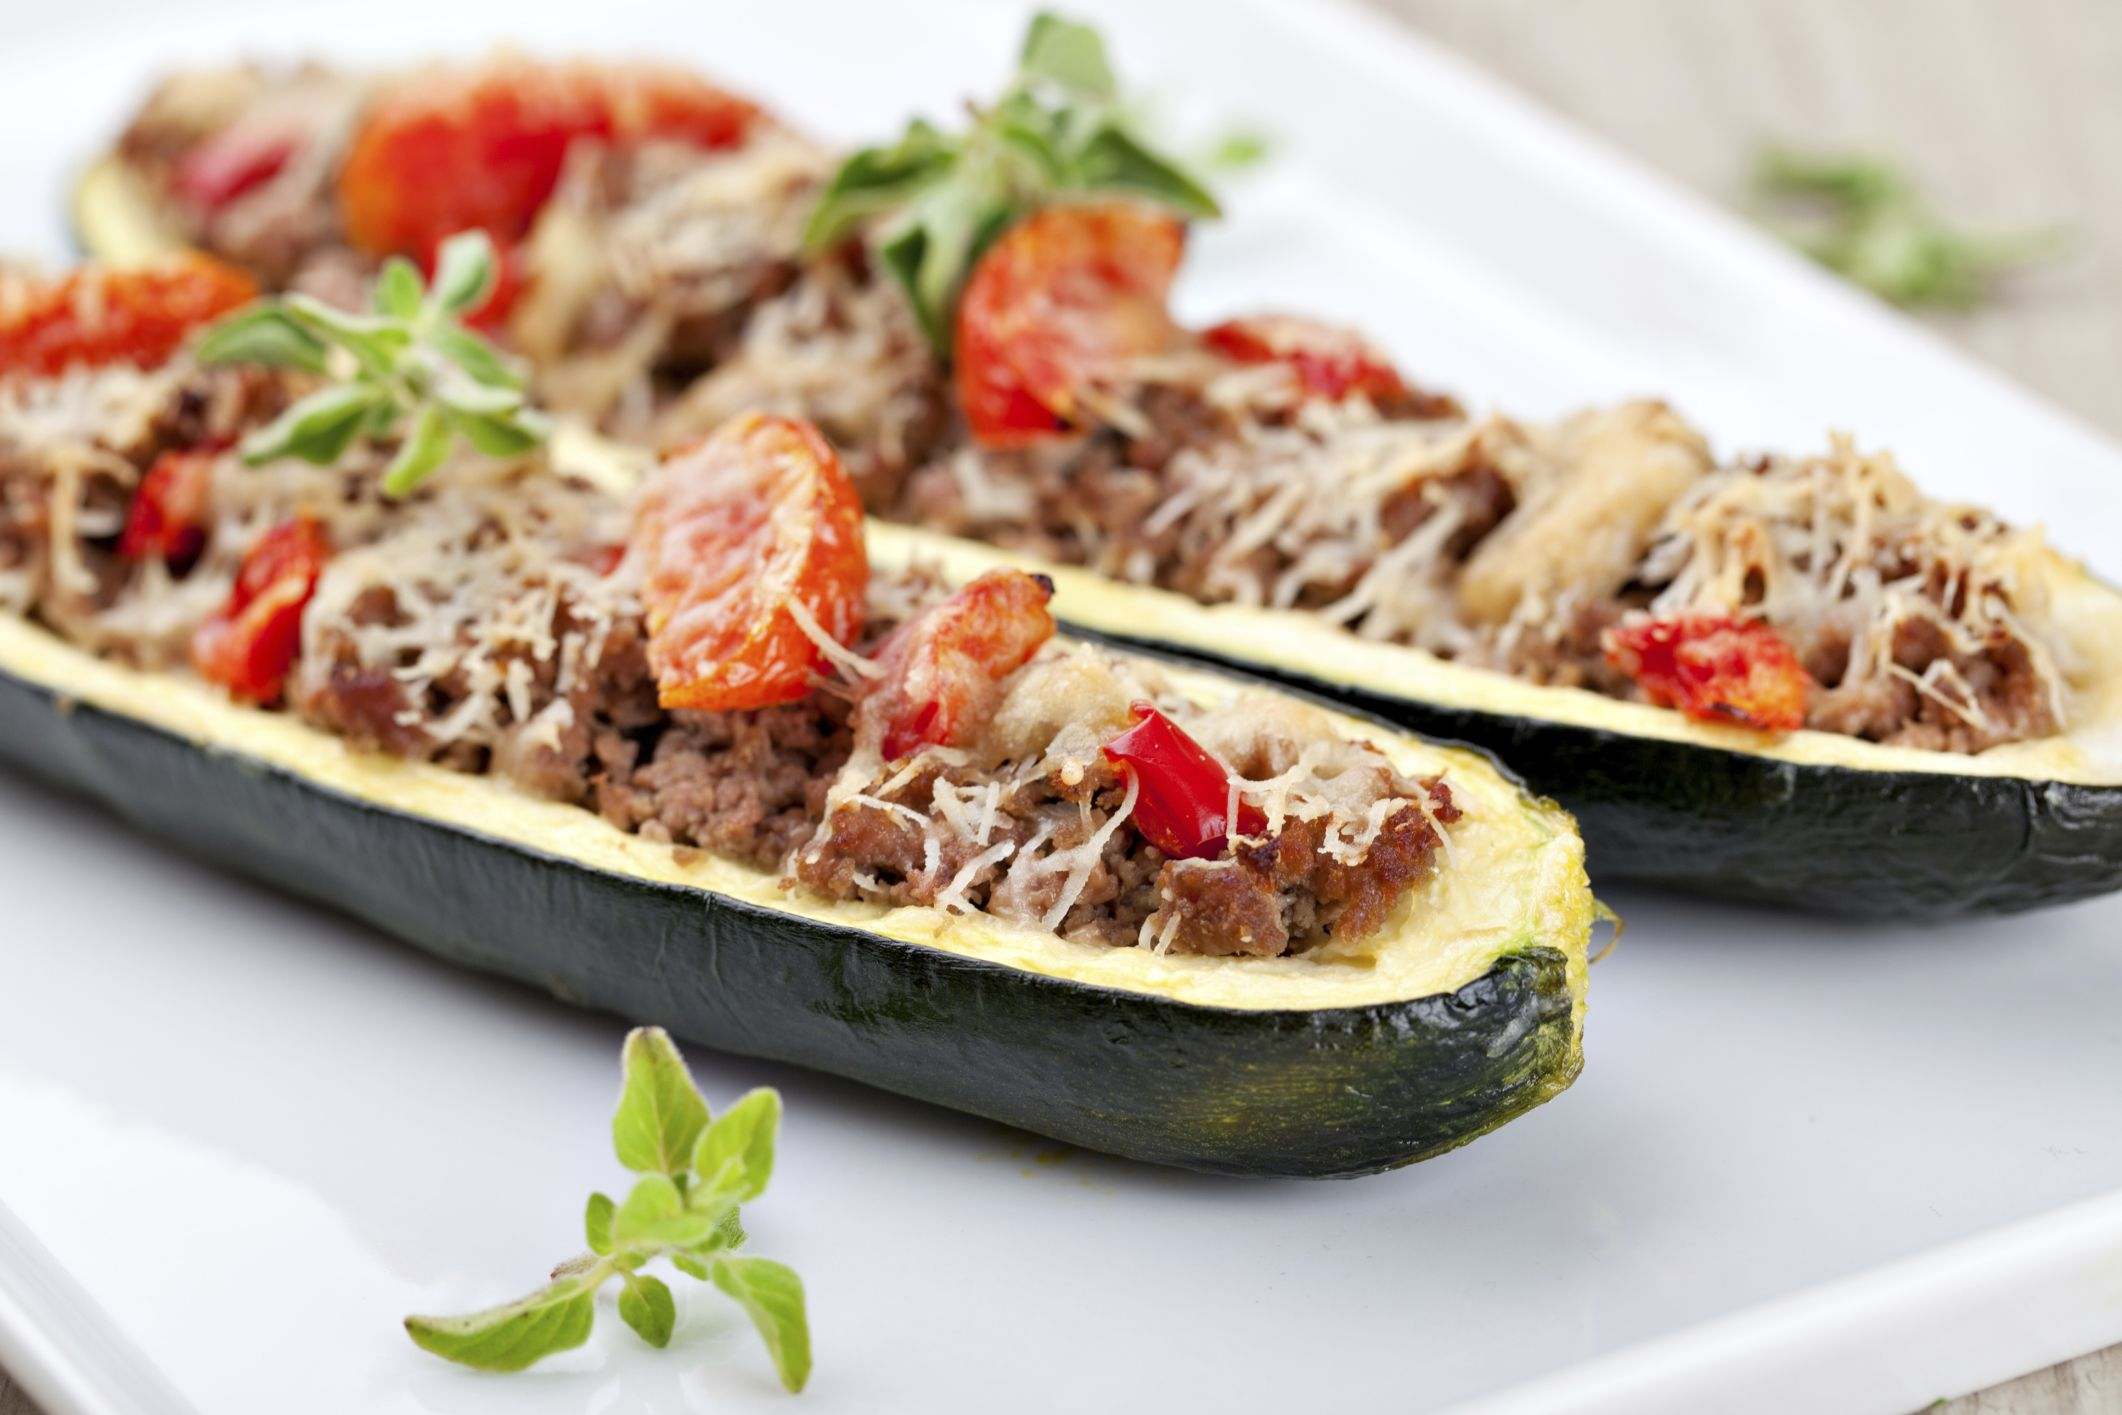 How To Cook Zucchini Stuffed With Ground Beef How To Cook Zucchini Ground Beef Rice Beef And Rice